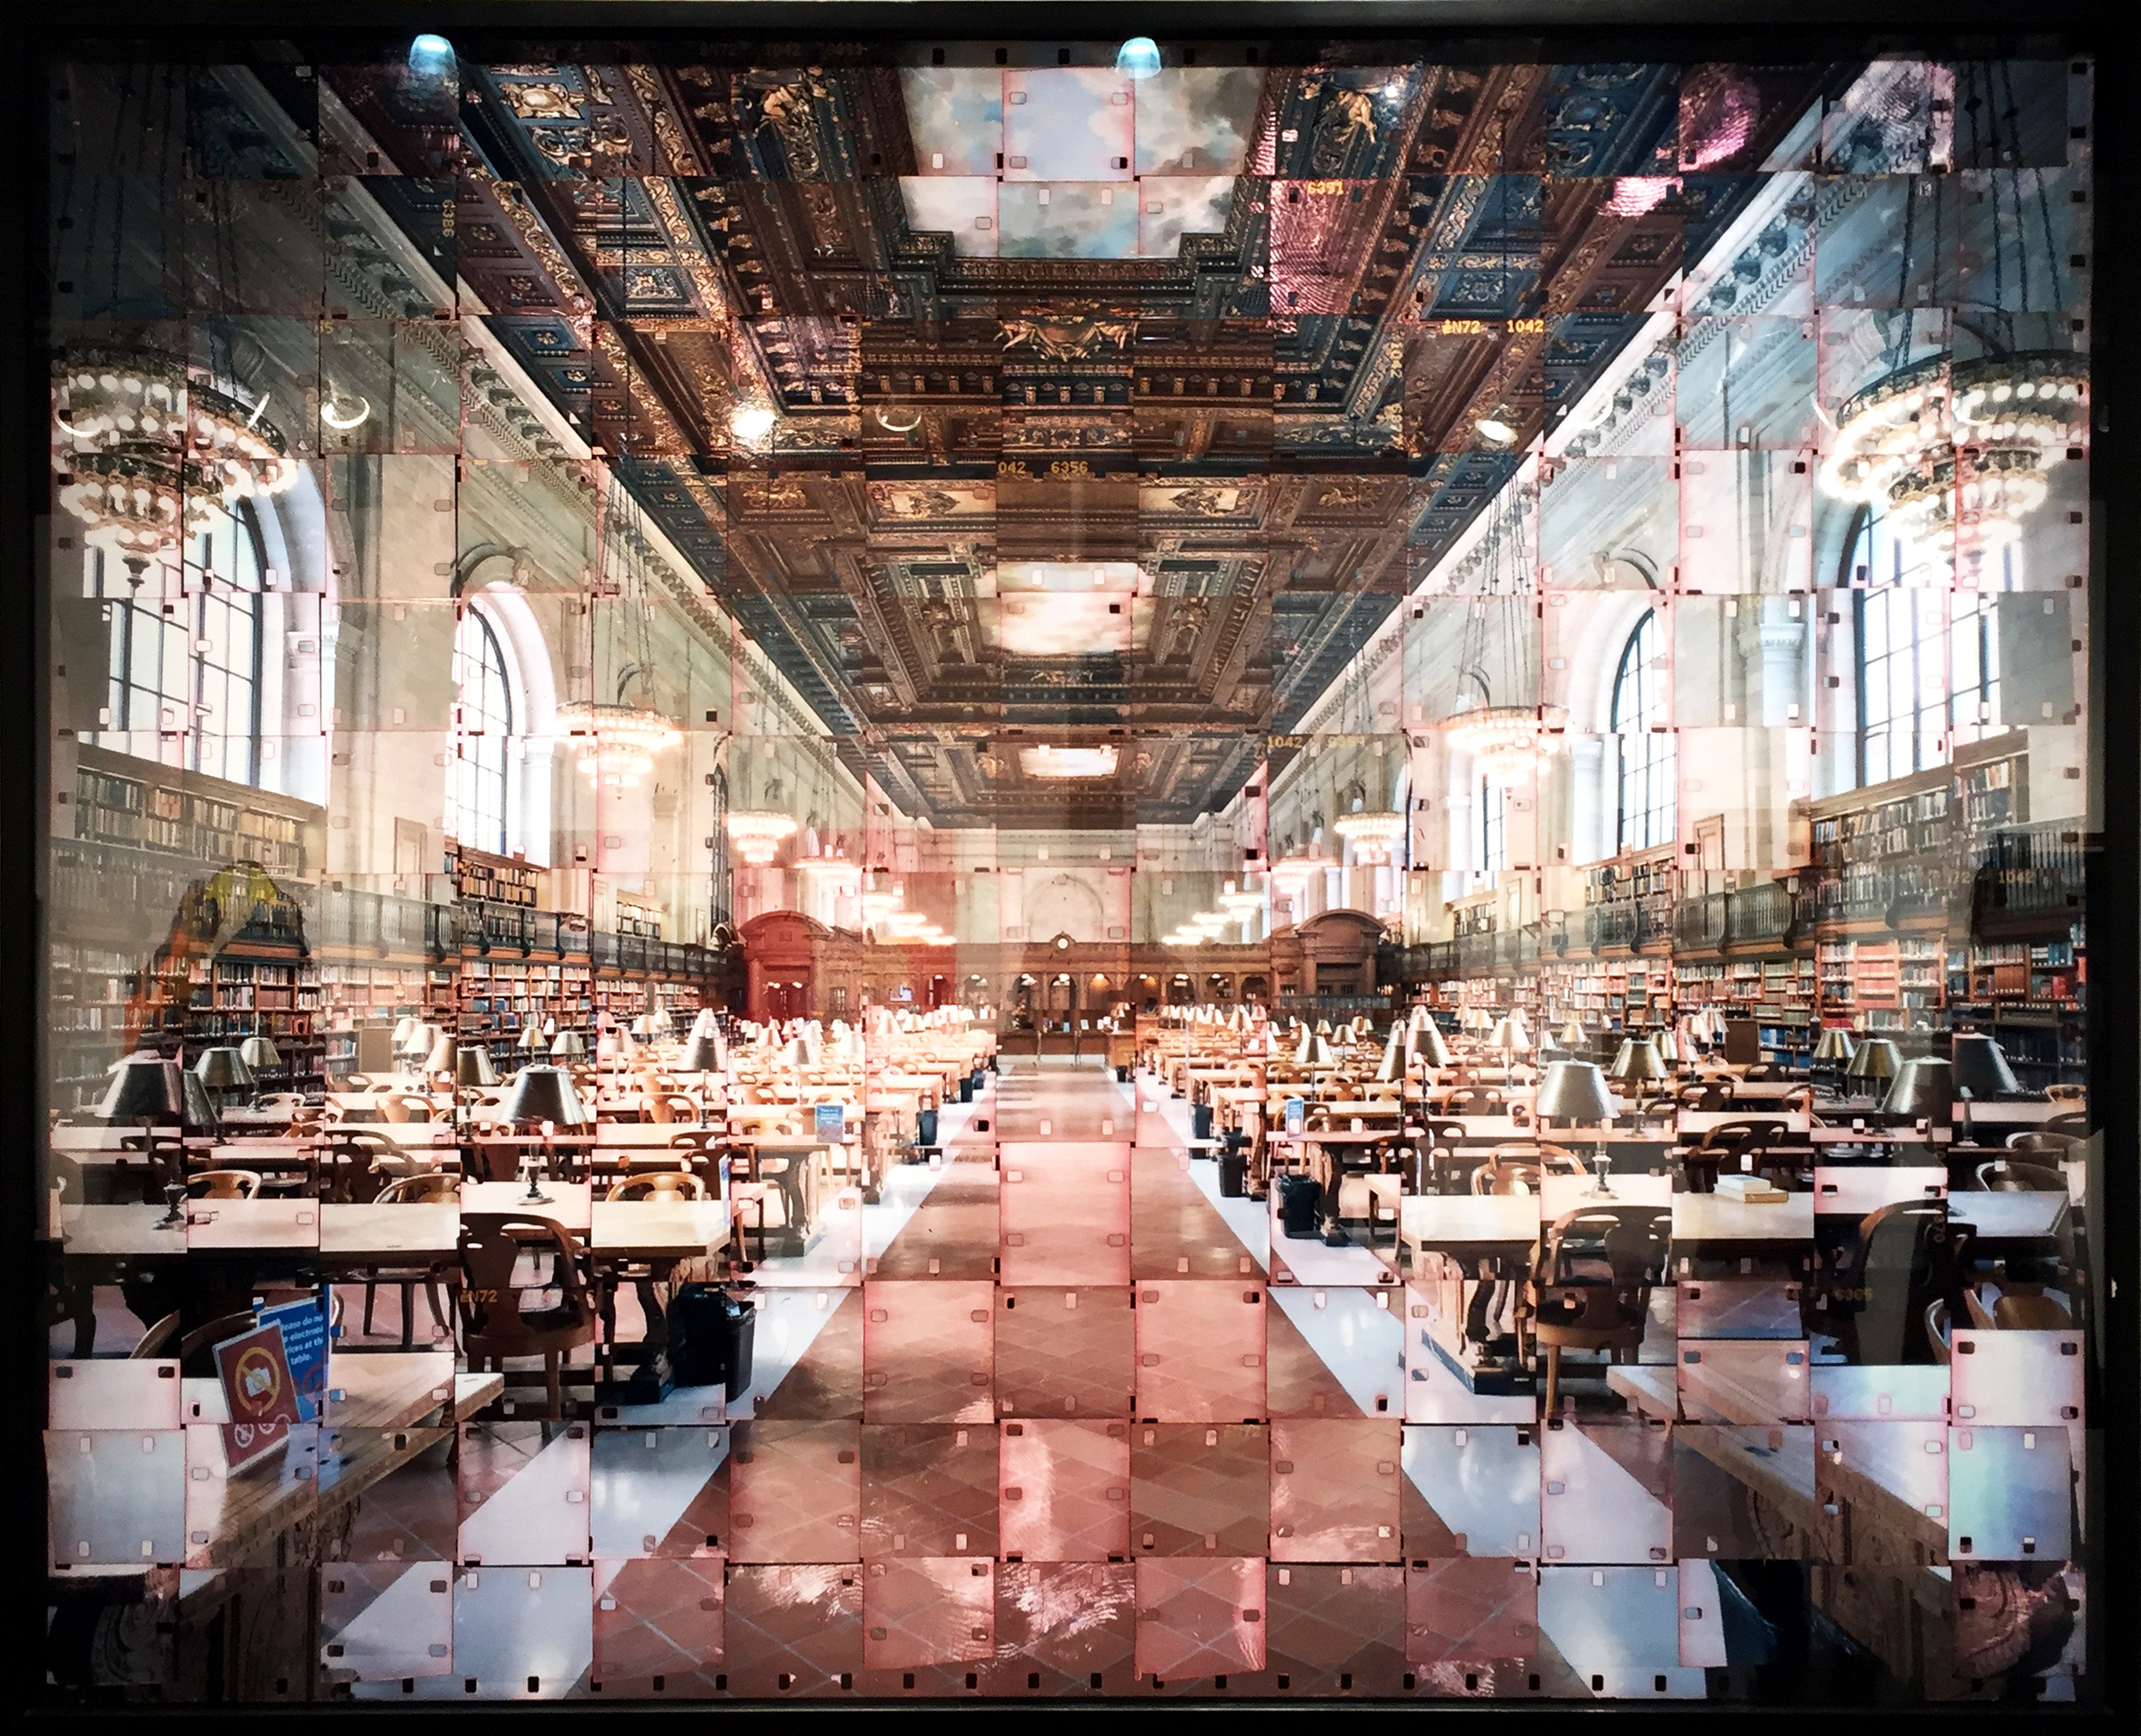 New York Public Library, 2014 | By Park Seung Hoon